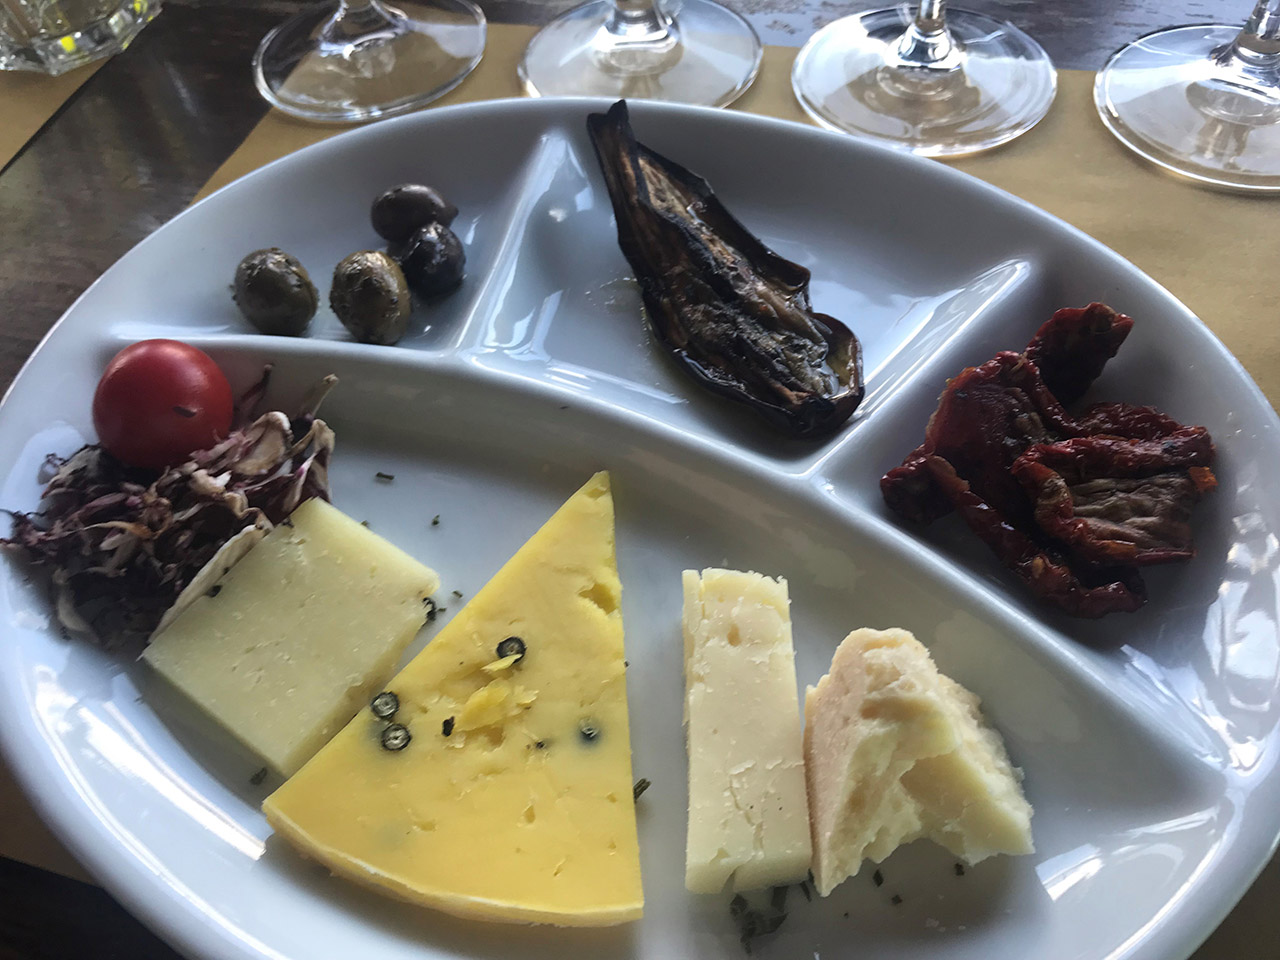 plate with various cheeses and other food.